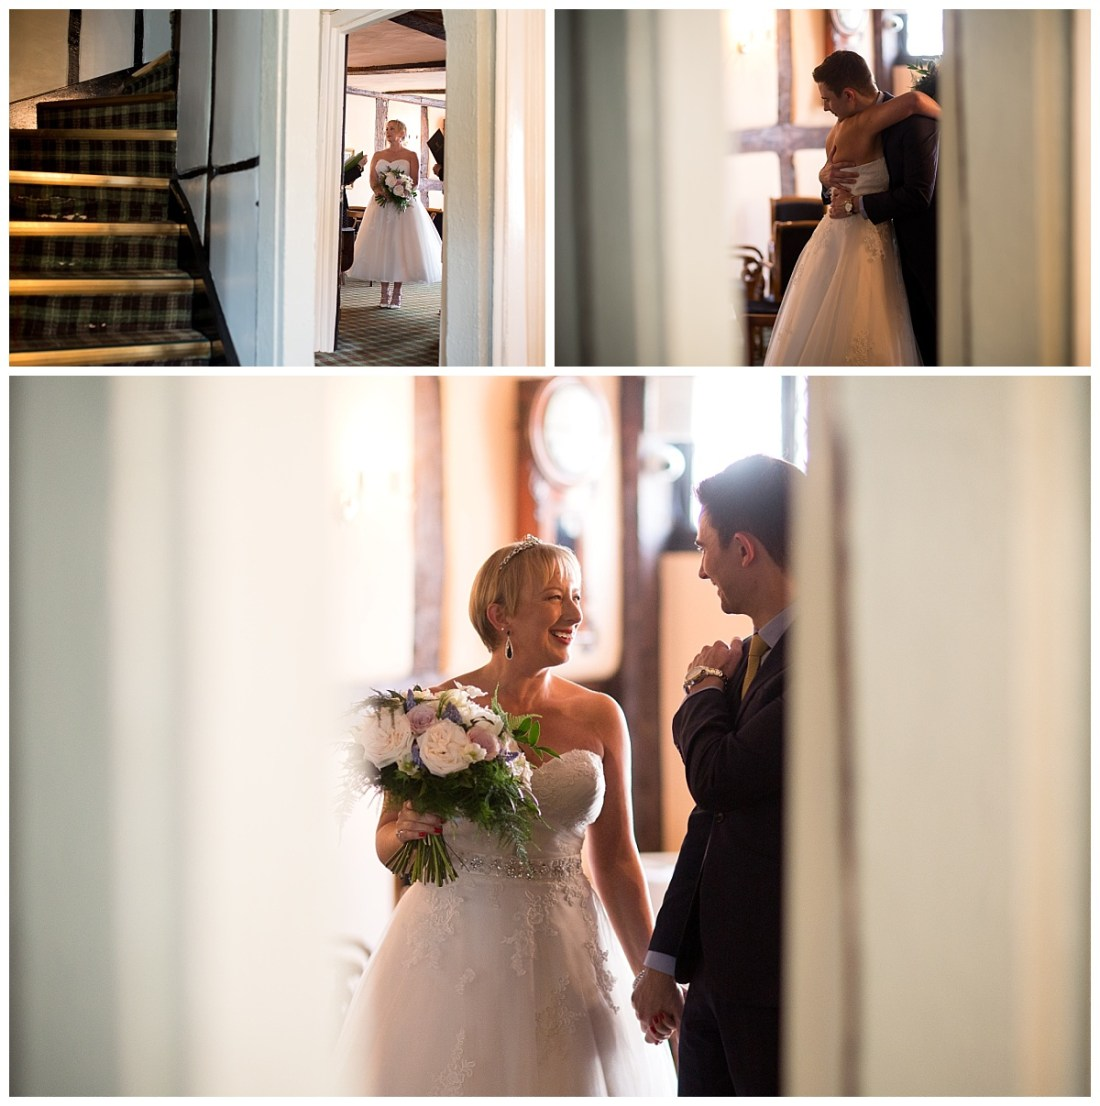 Weddings at The Crown Hotel Nantwich